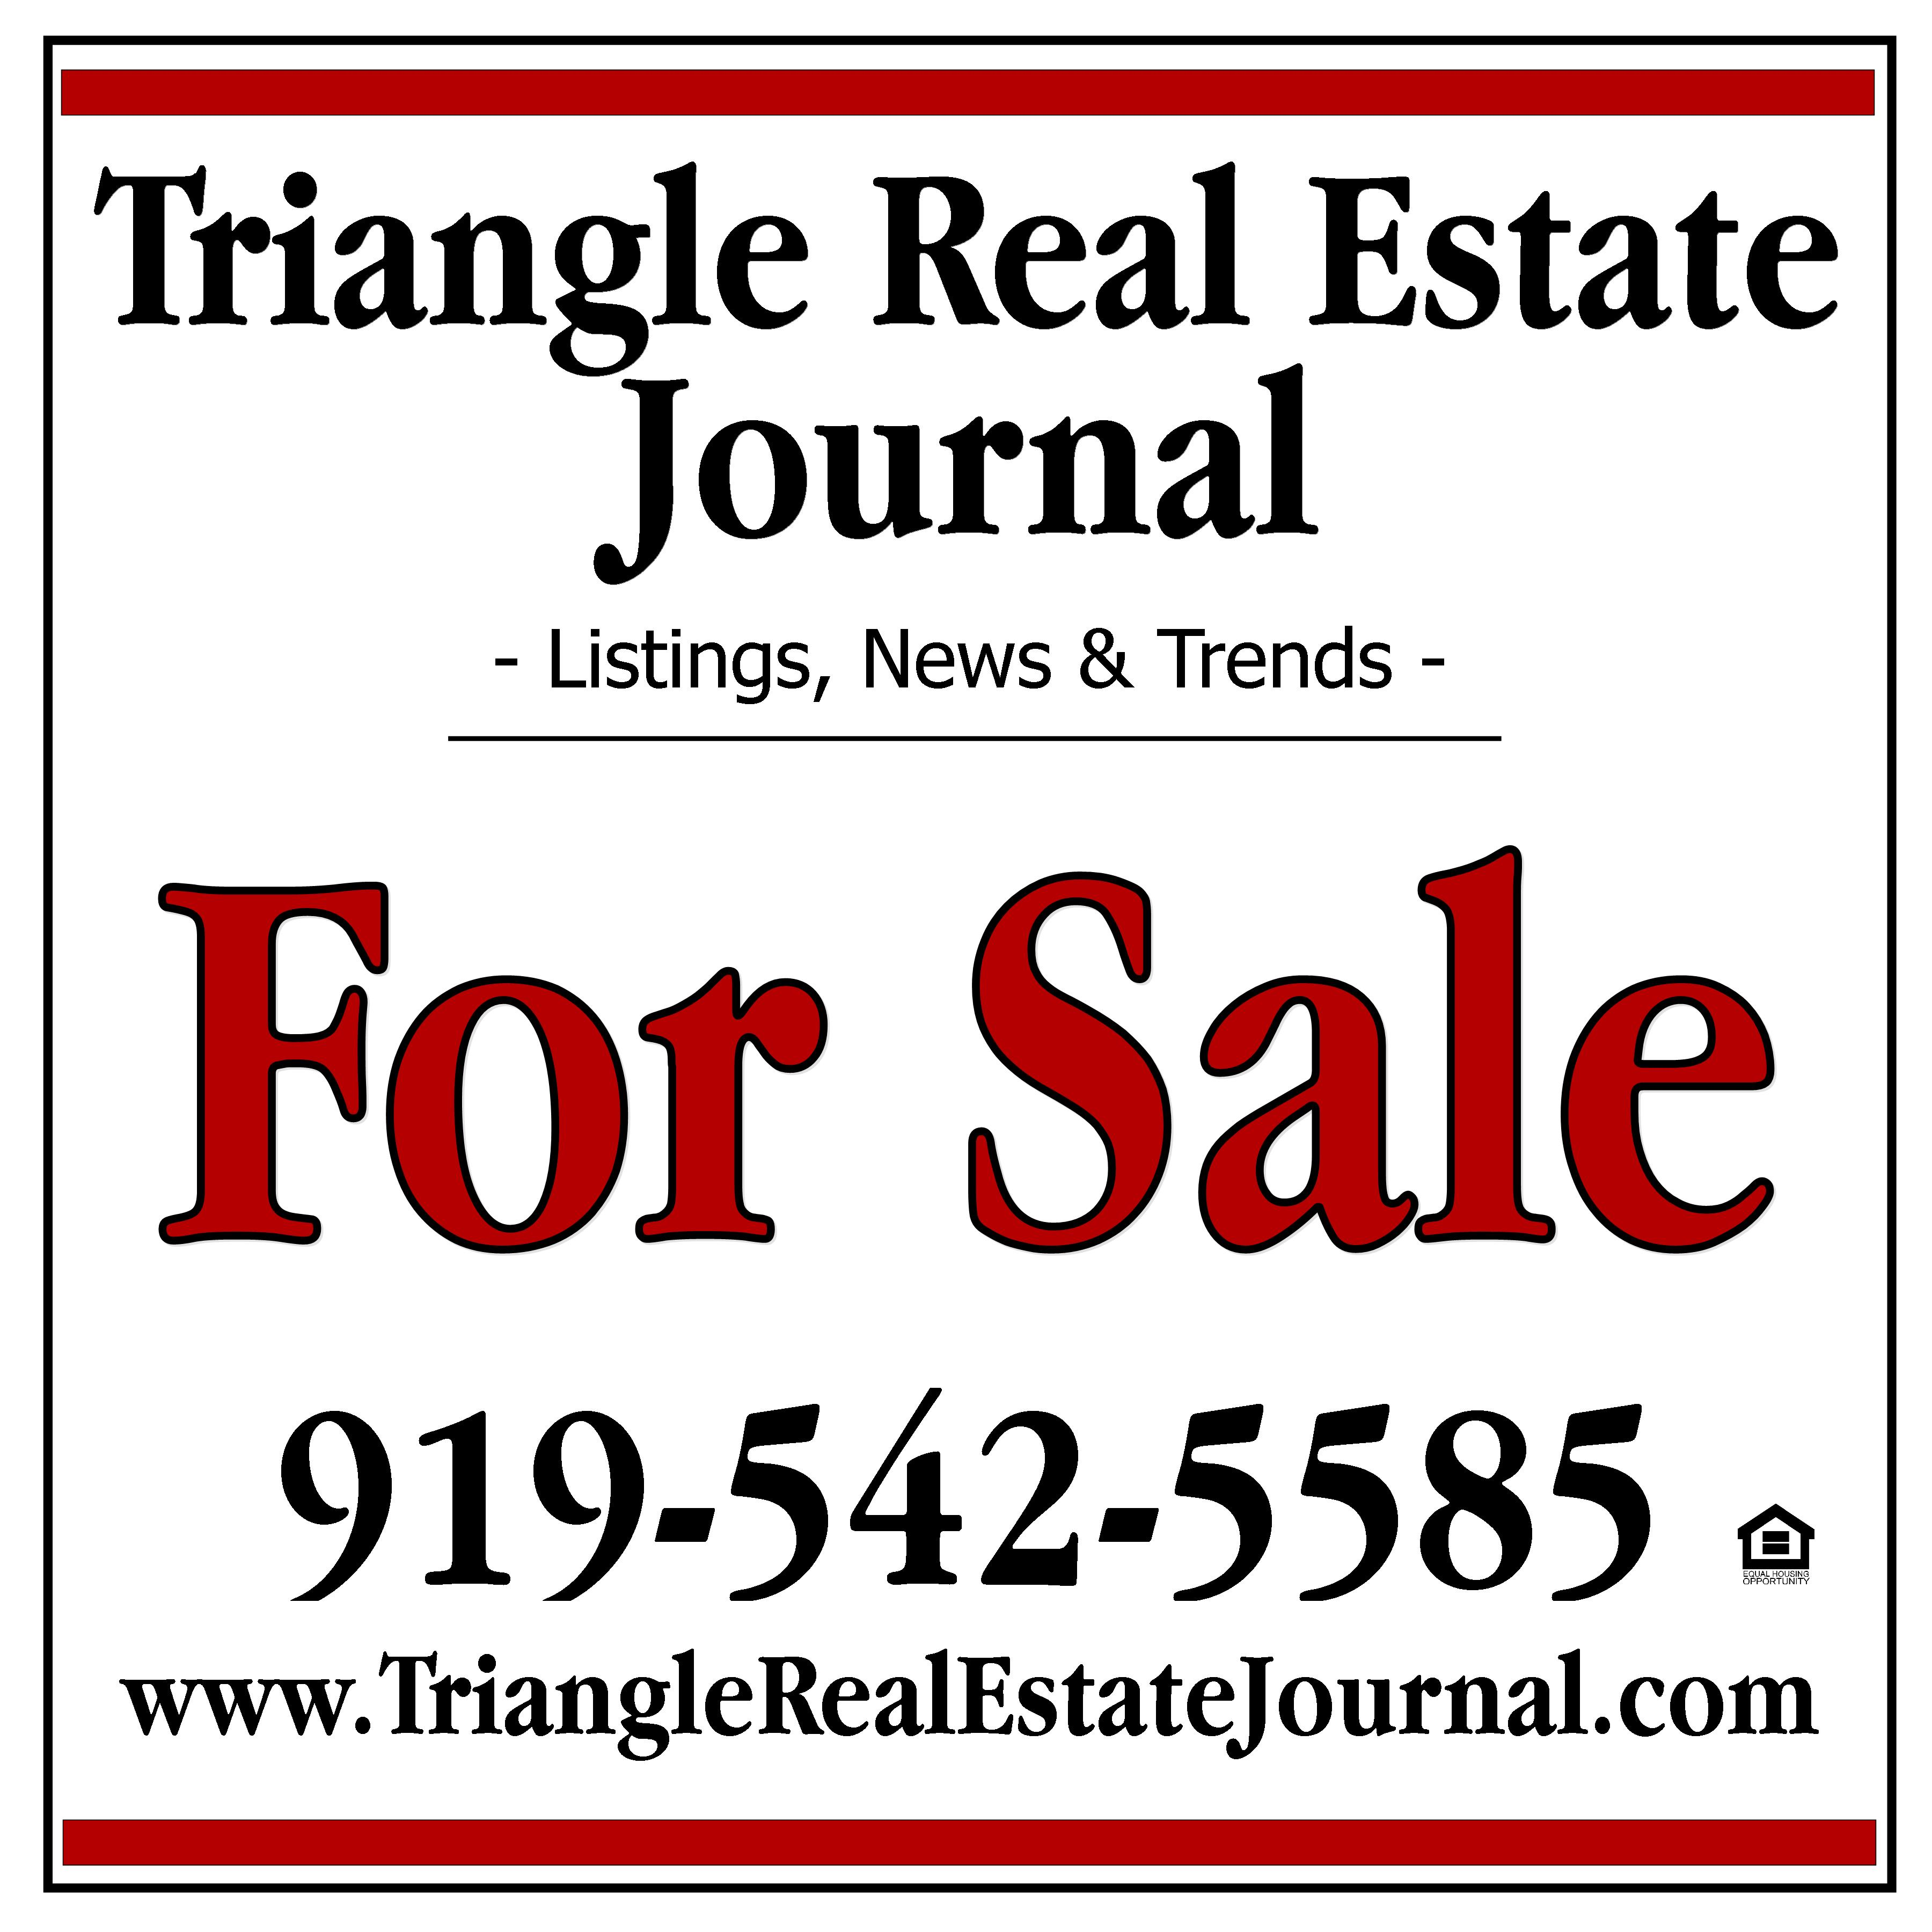 triangle real estate journal - raleigh real estate